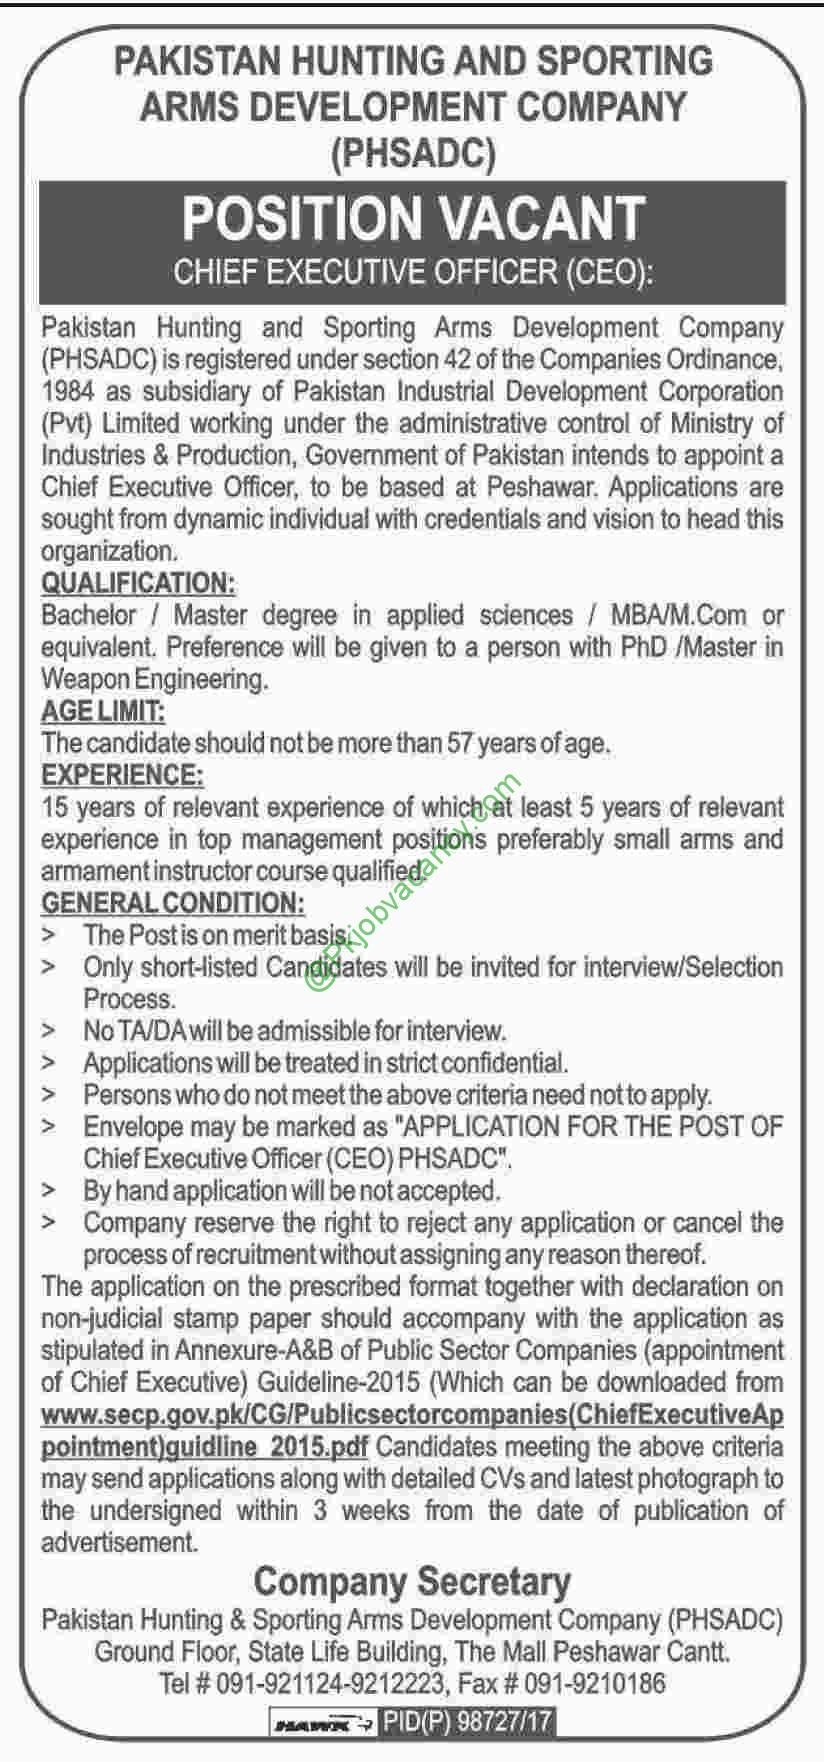 Pakistan Hunting and Sporting Arms Development Company PHSADC Jobs 2017